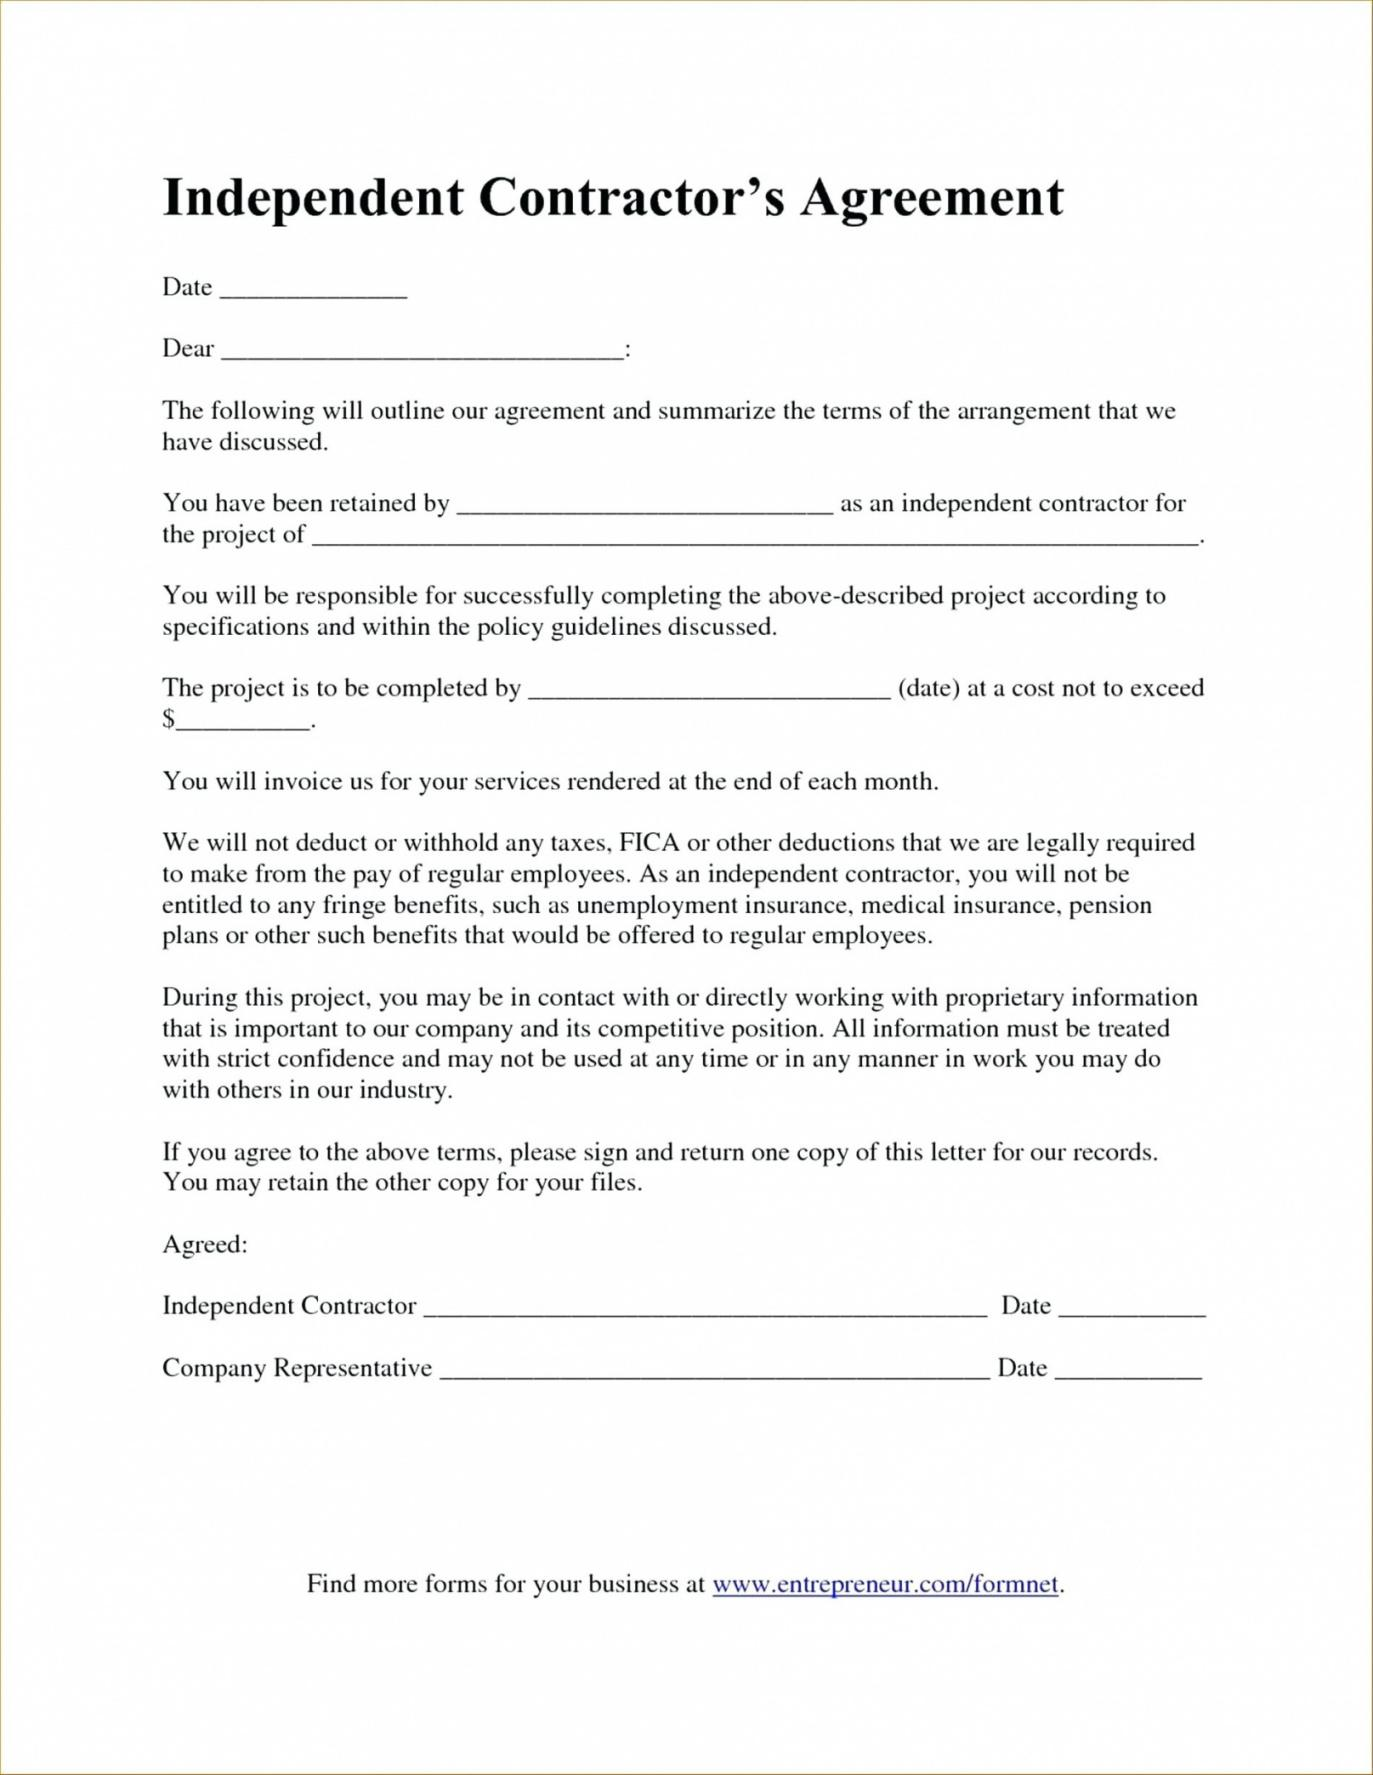 This Is The Independent Contractor Agreement Florida